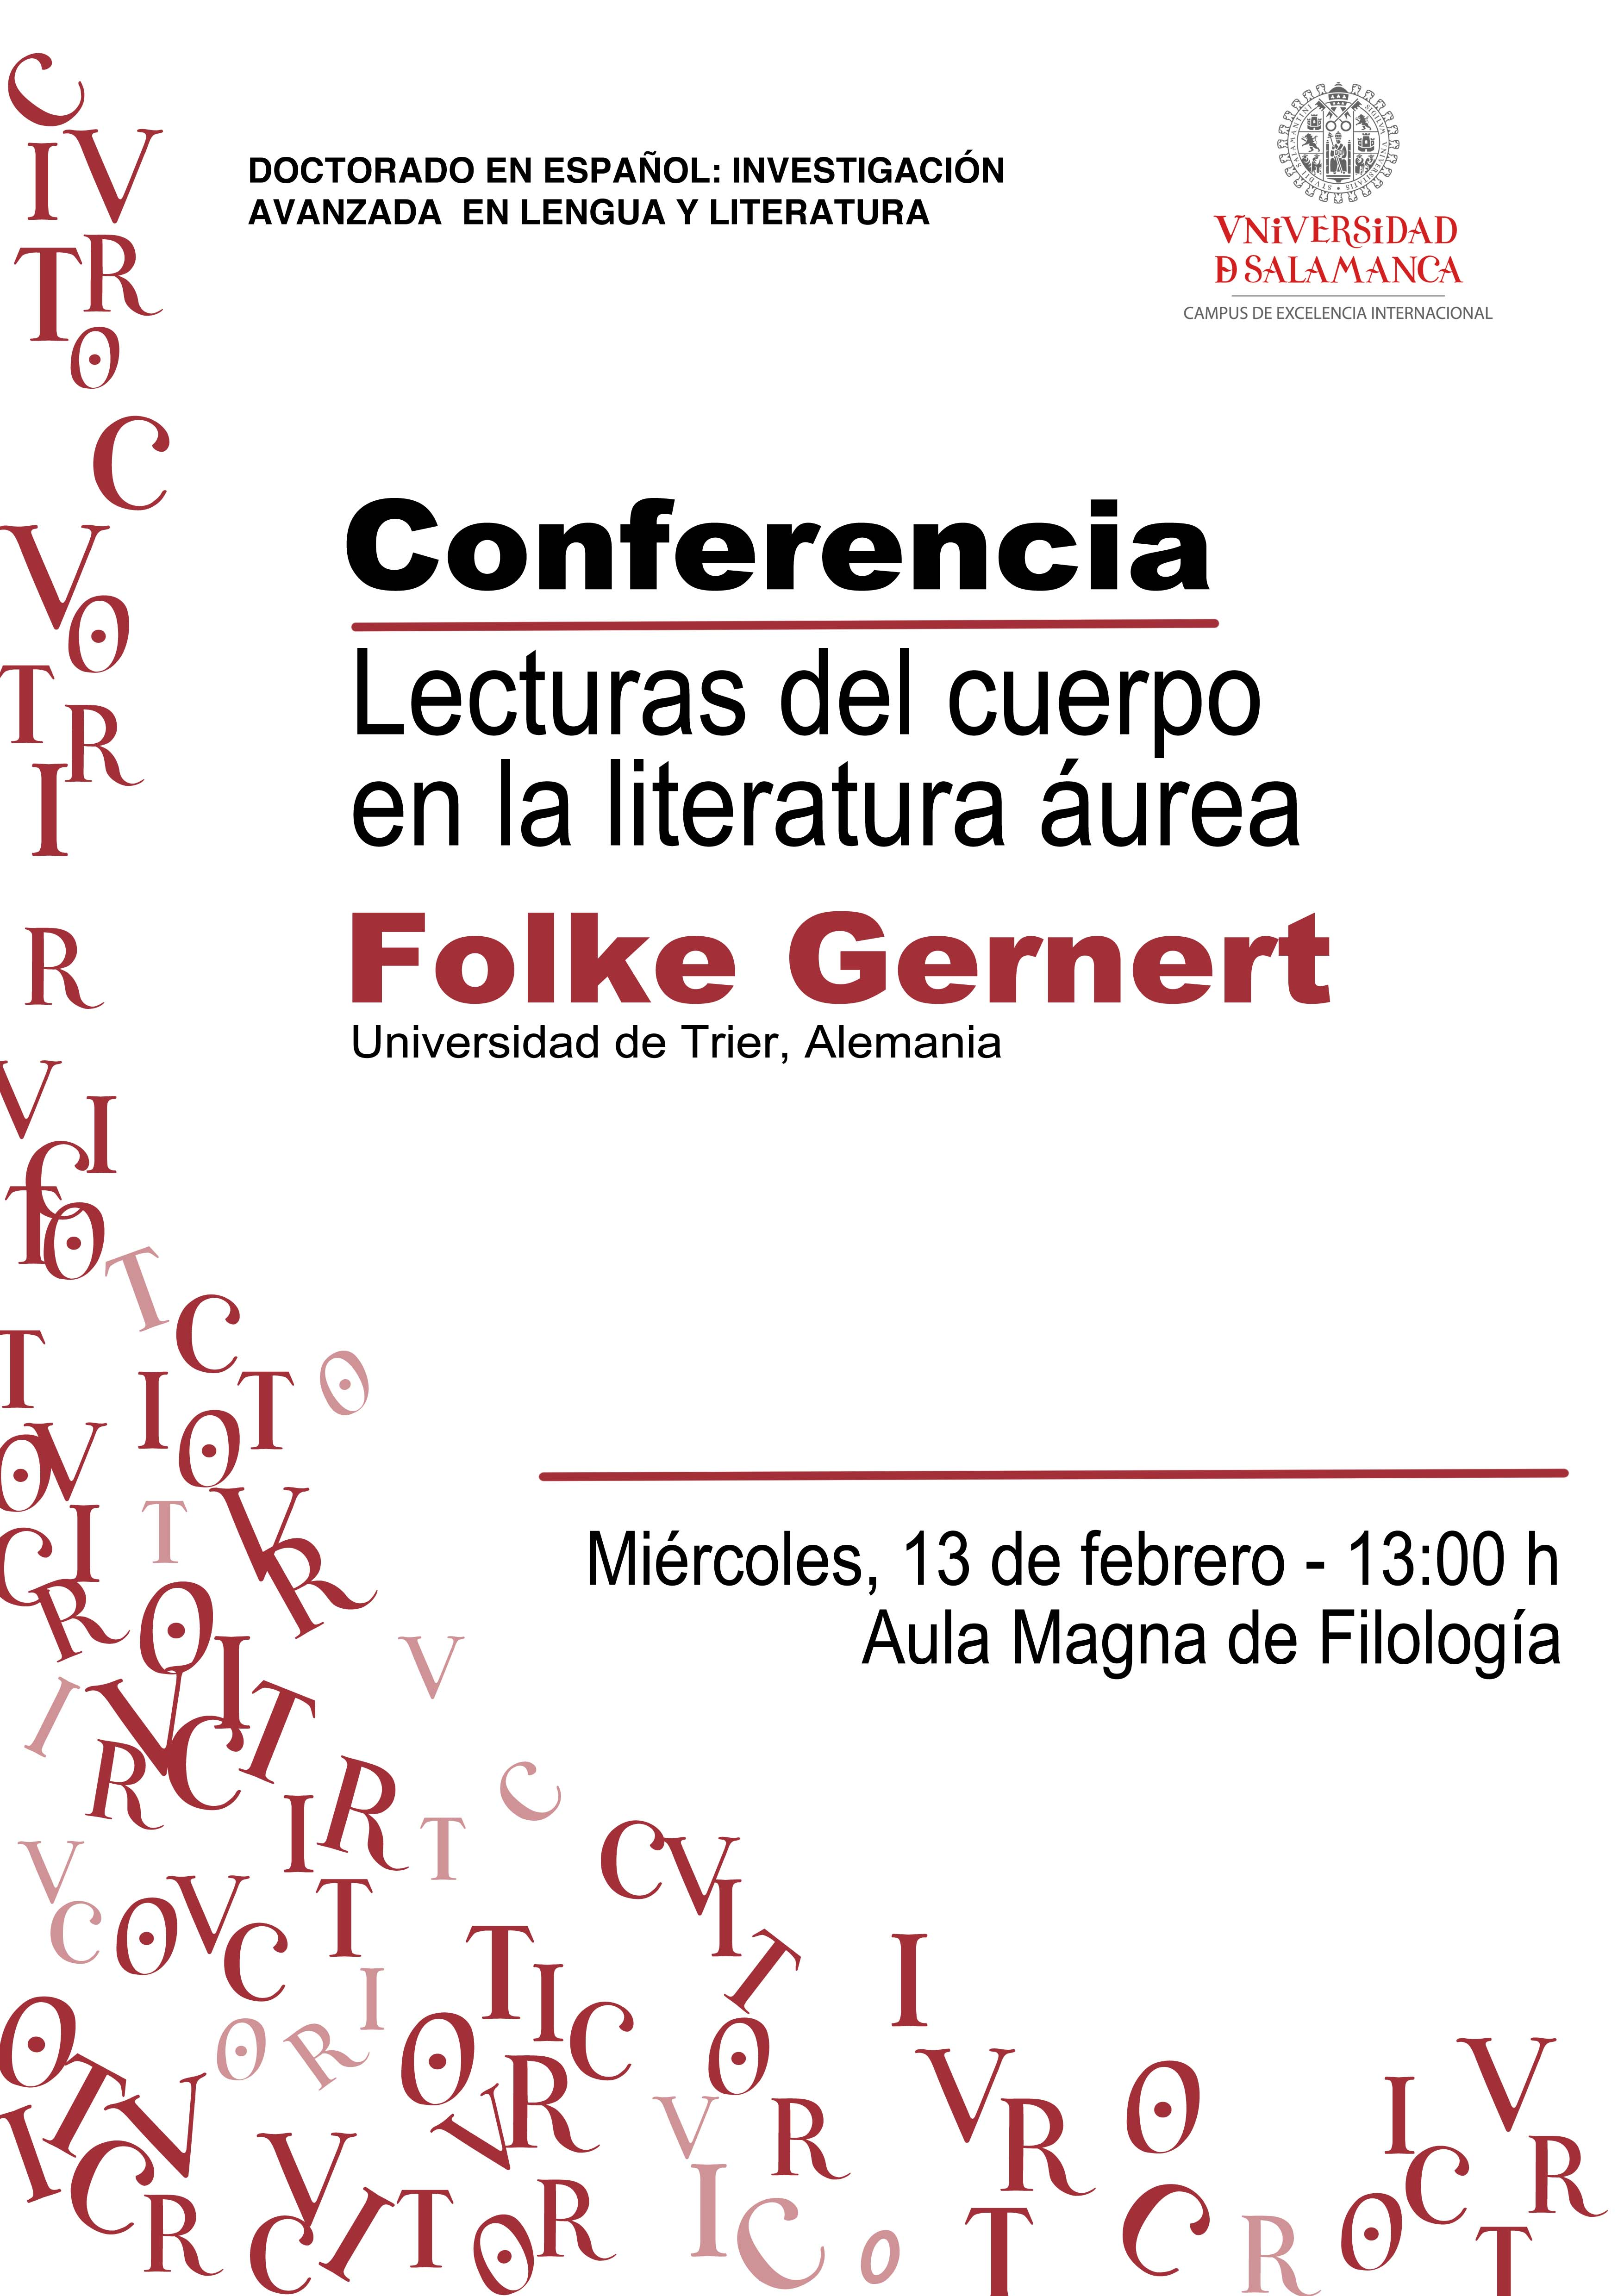 Conferencia de Folke Gernert